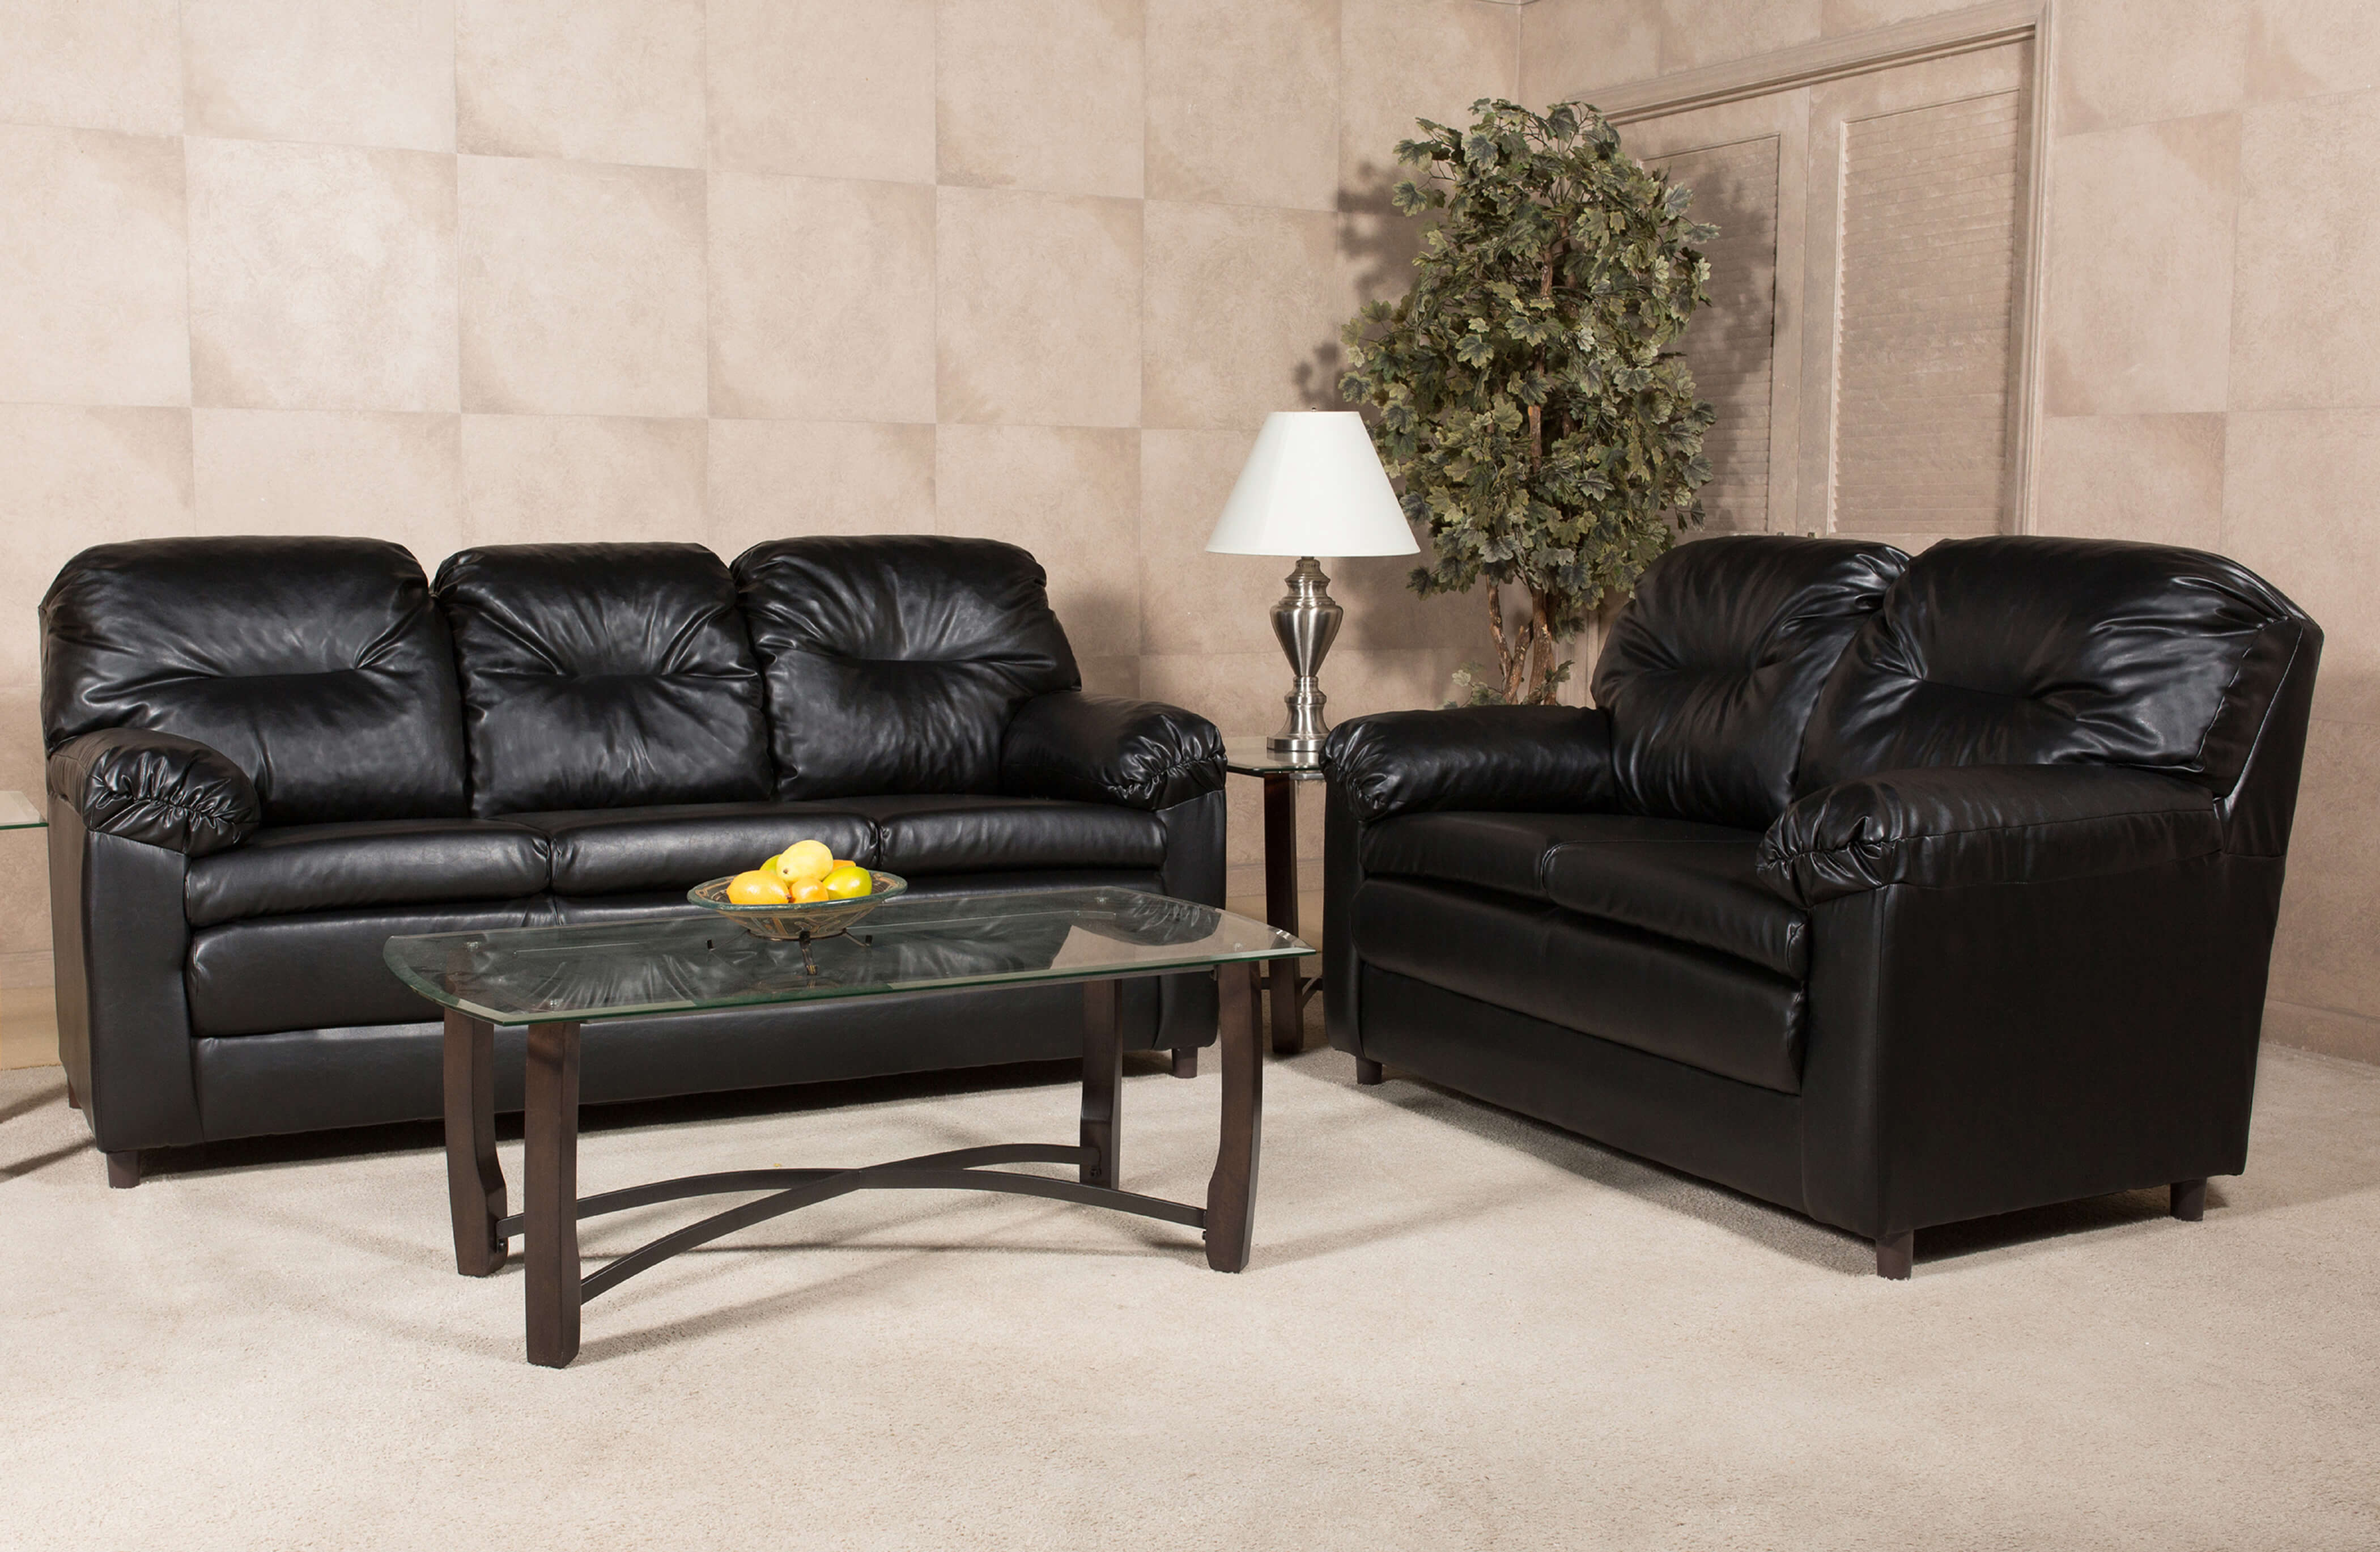 urban home sullivan sofa olympic queen bed sheets living room furniture outlet delaware